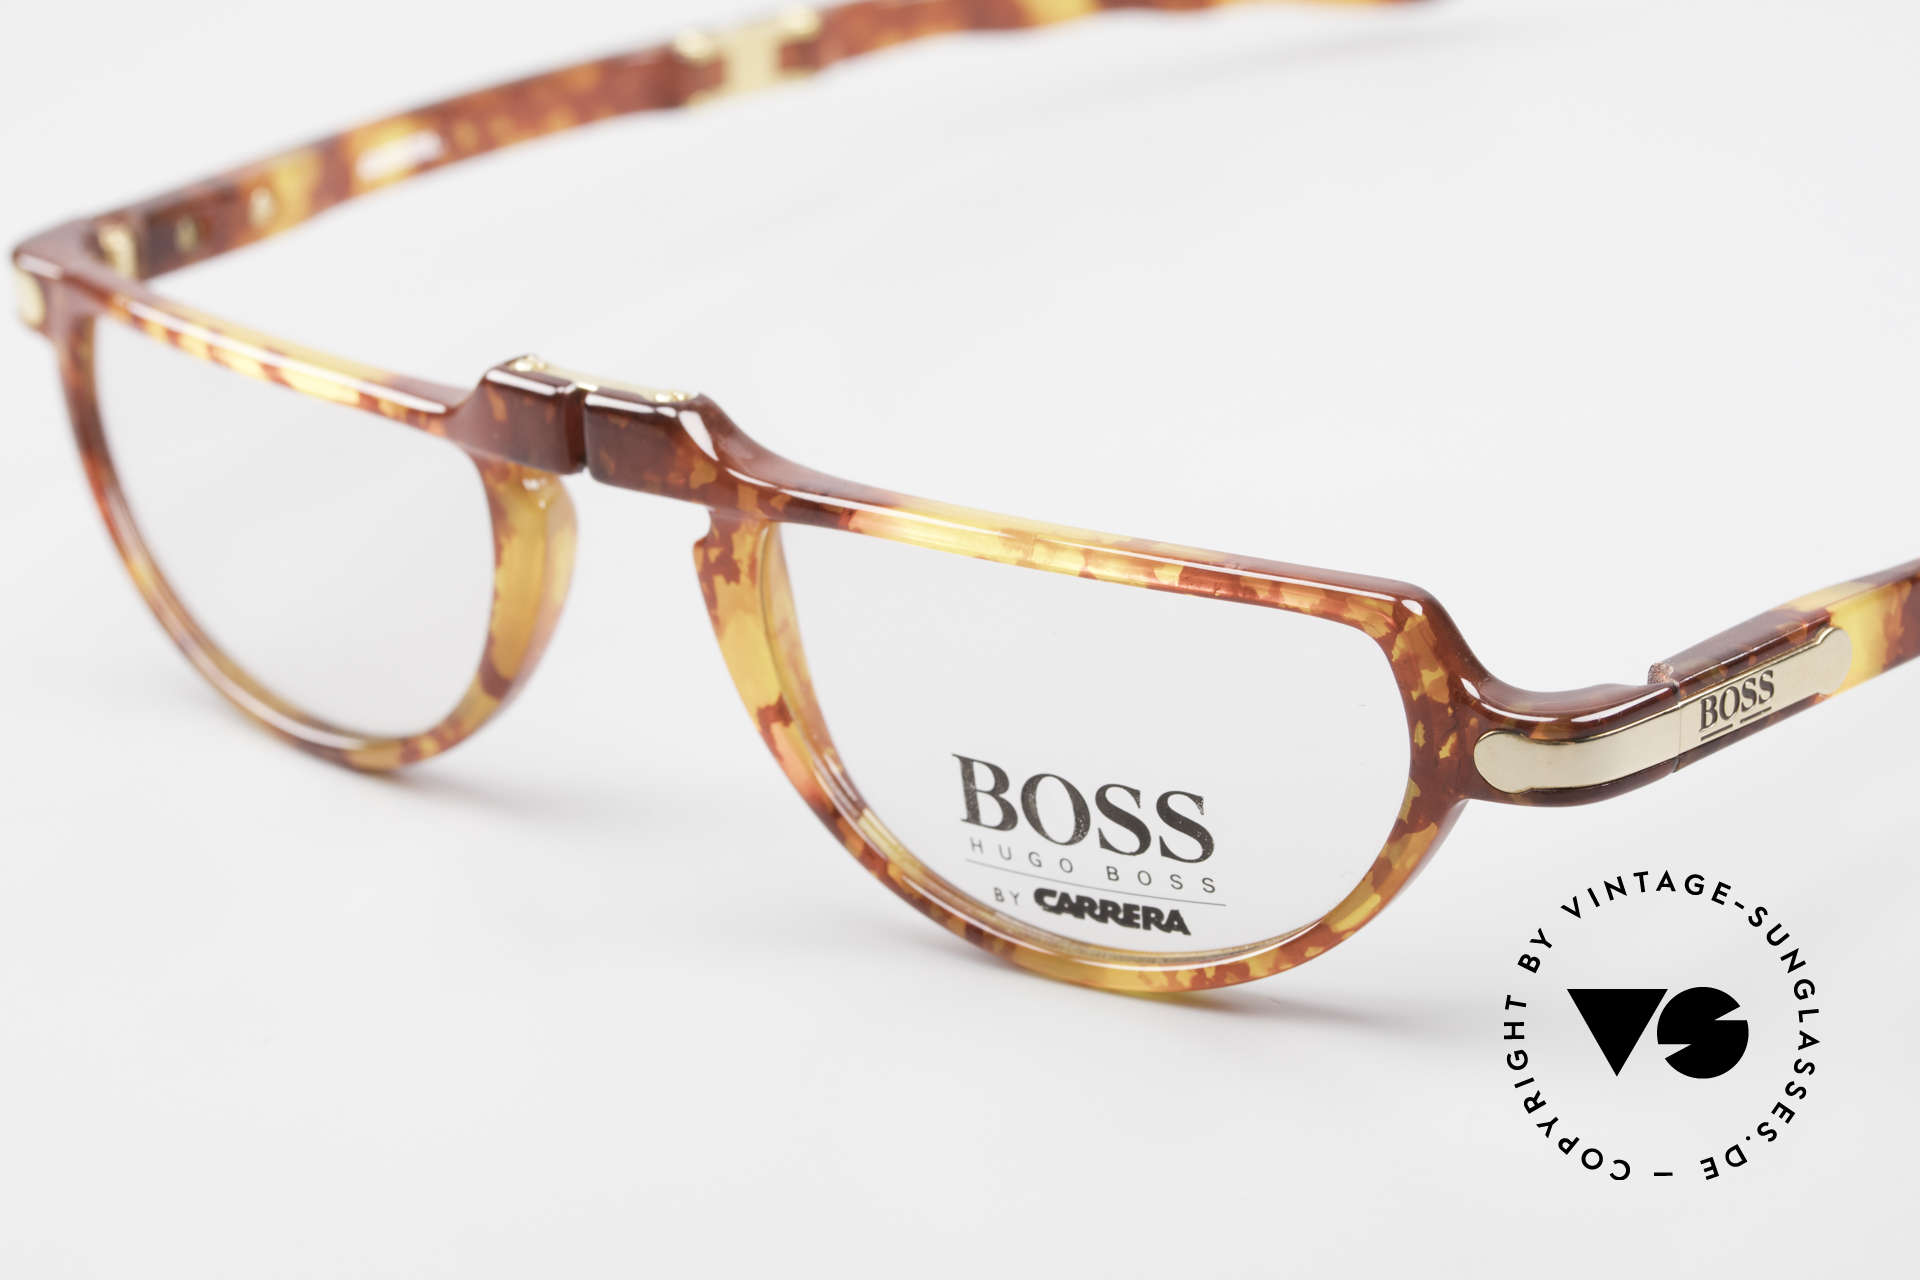 BOSS 5103 90's Folding Reading Glasses, typical 'Optyl shine' - as brilliant as just produced, Made for Men and Women